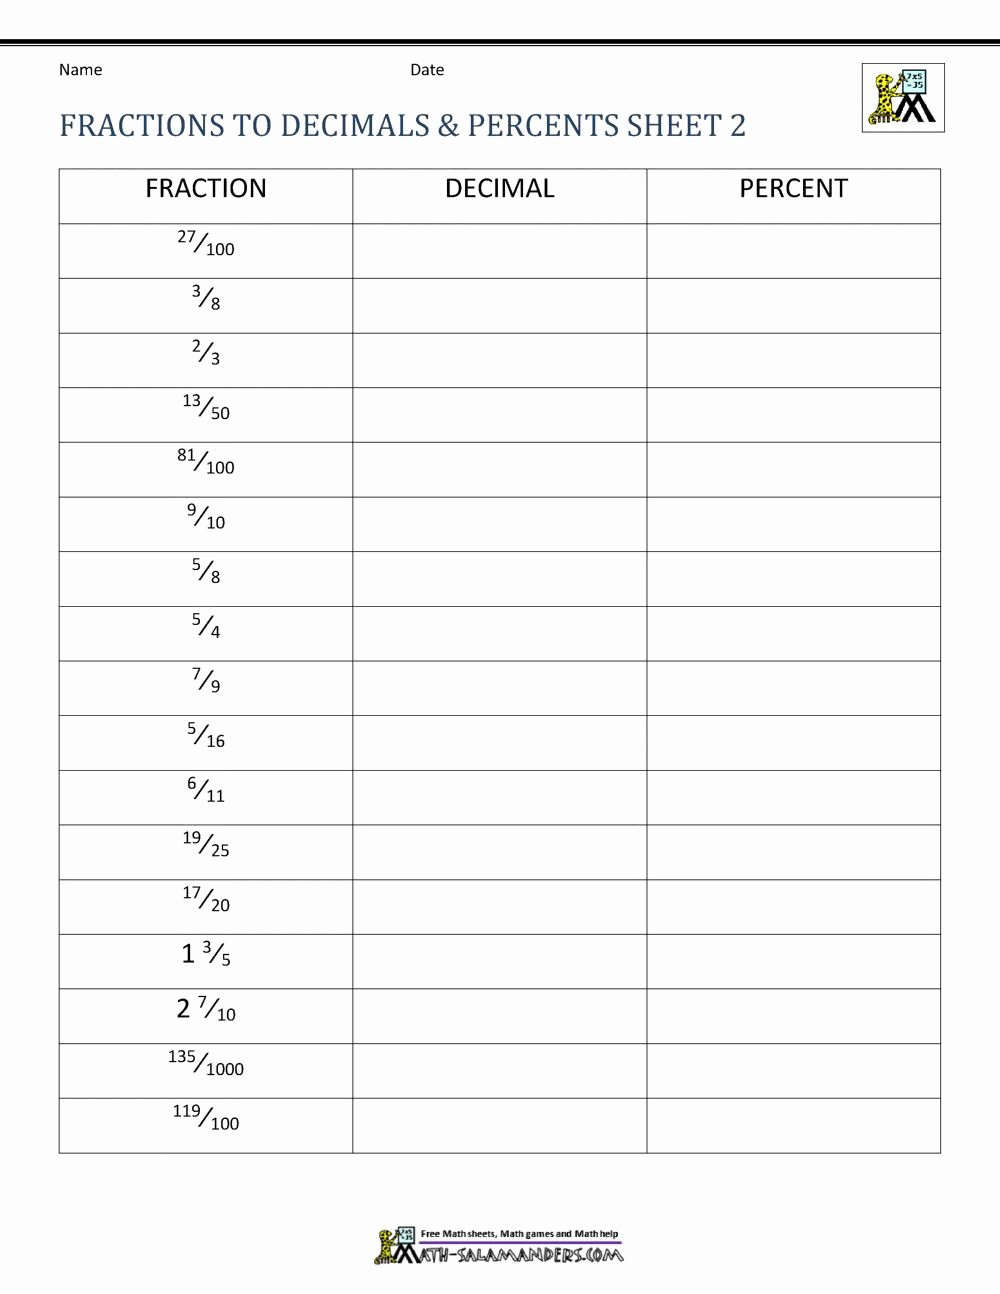 Fraction Decimal Percent Conversion Worksheet Free Wonderful Fraction Decimal Percent Chart In 2020